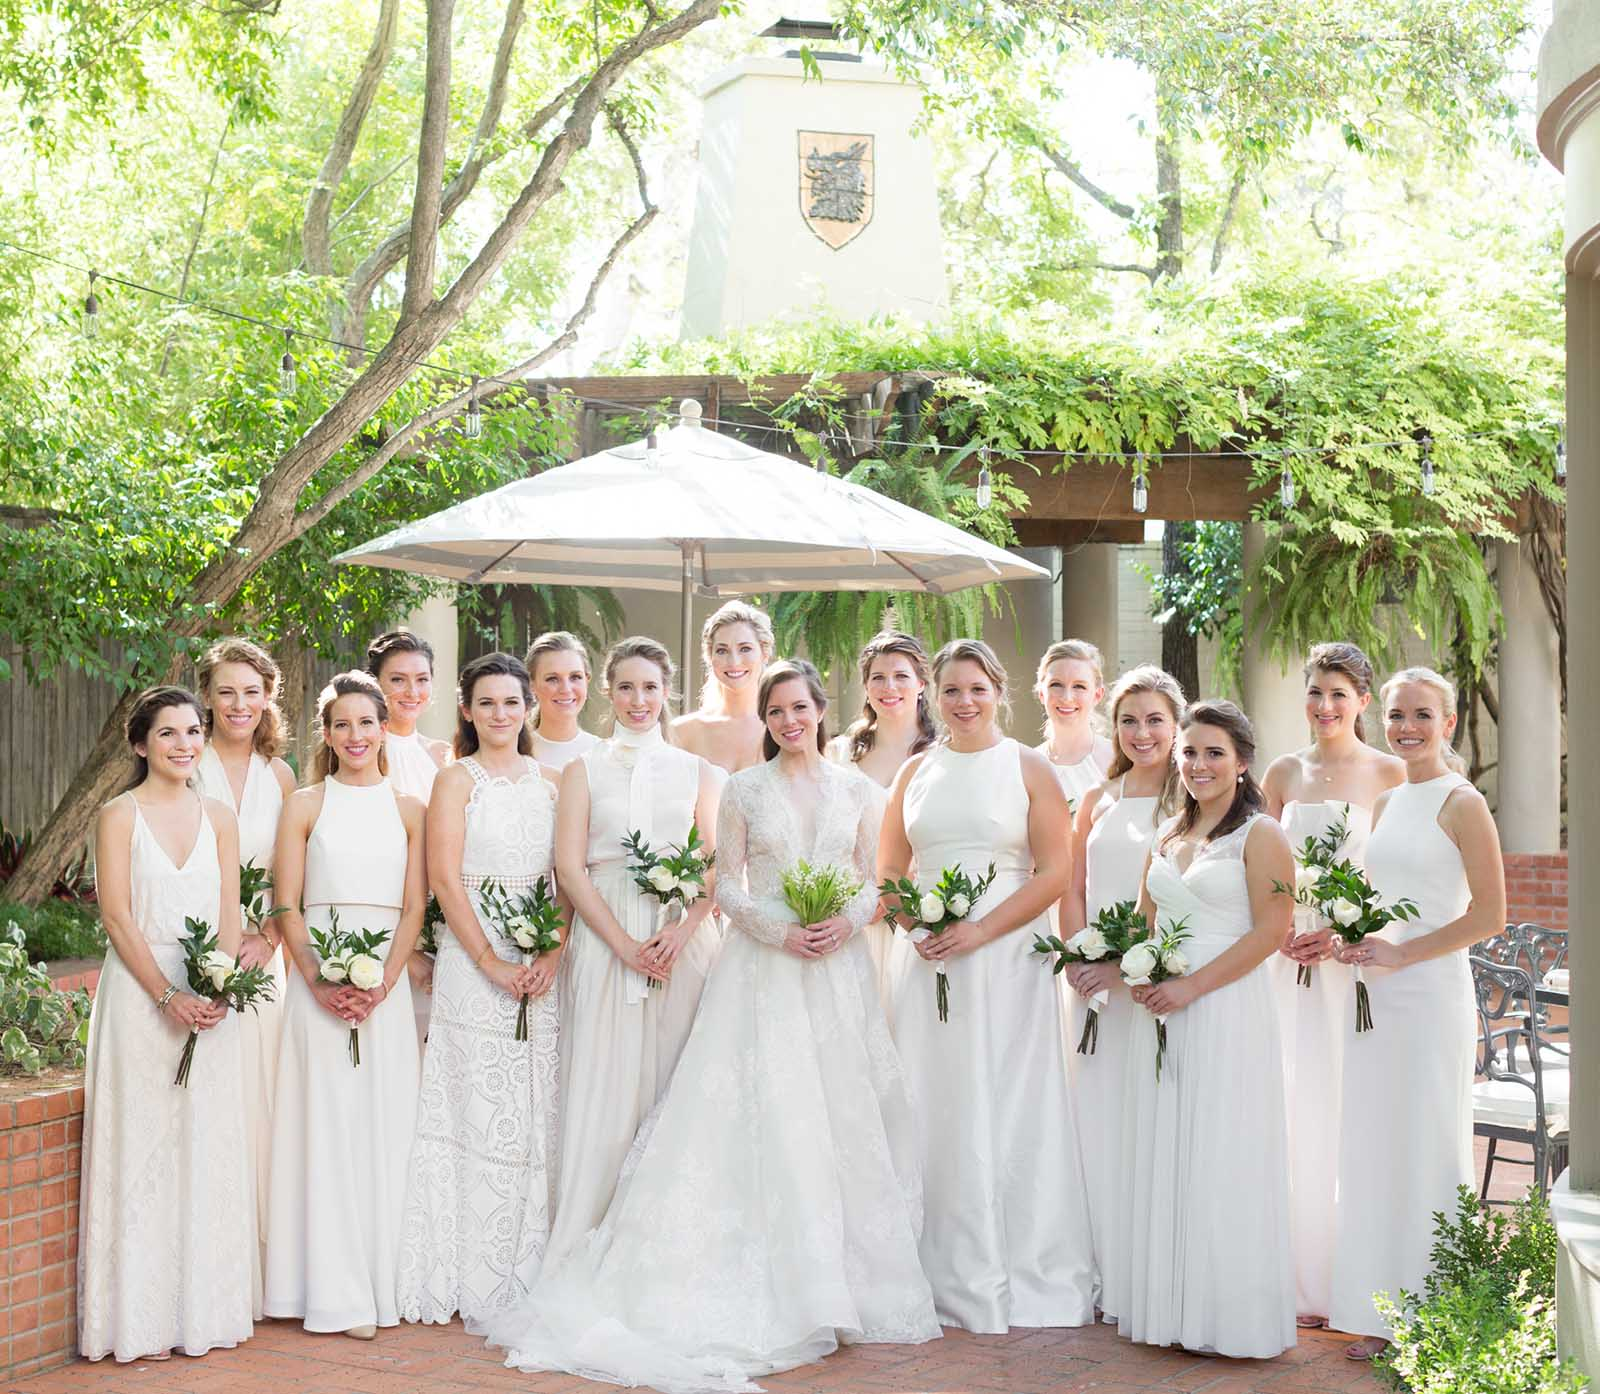 A bridal party gathered together in a court yard in San Antonino, Texas. They are wearing all white and carrying lilies.